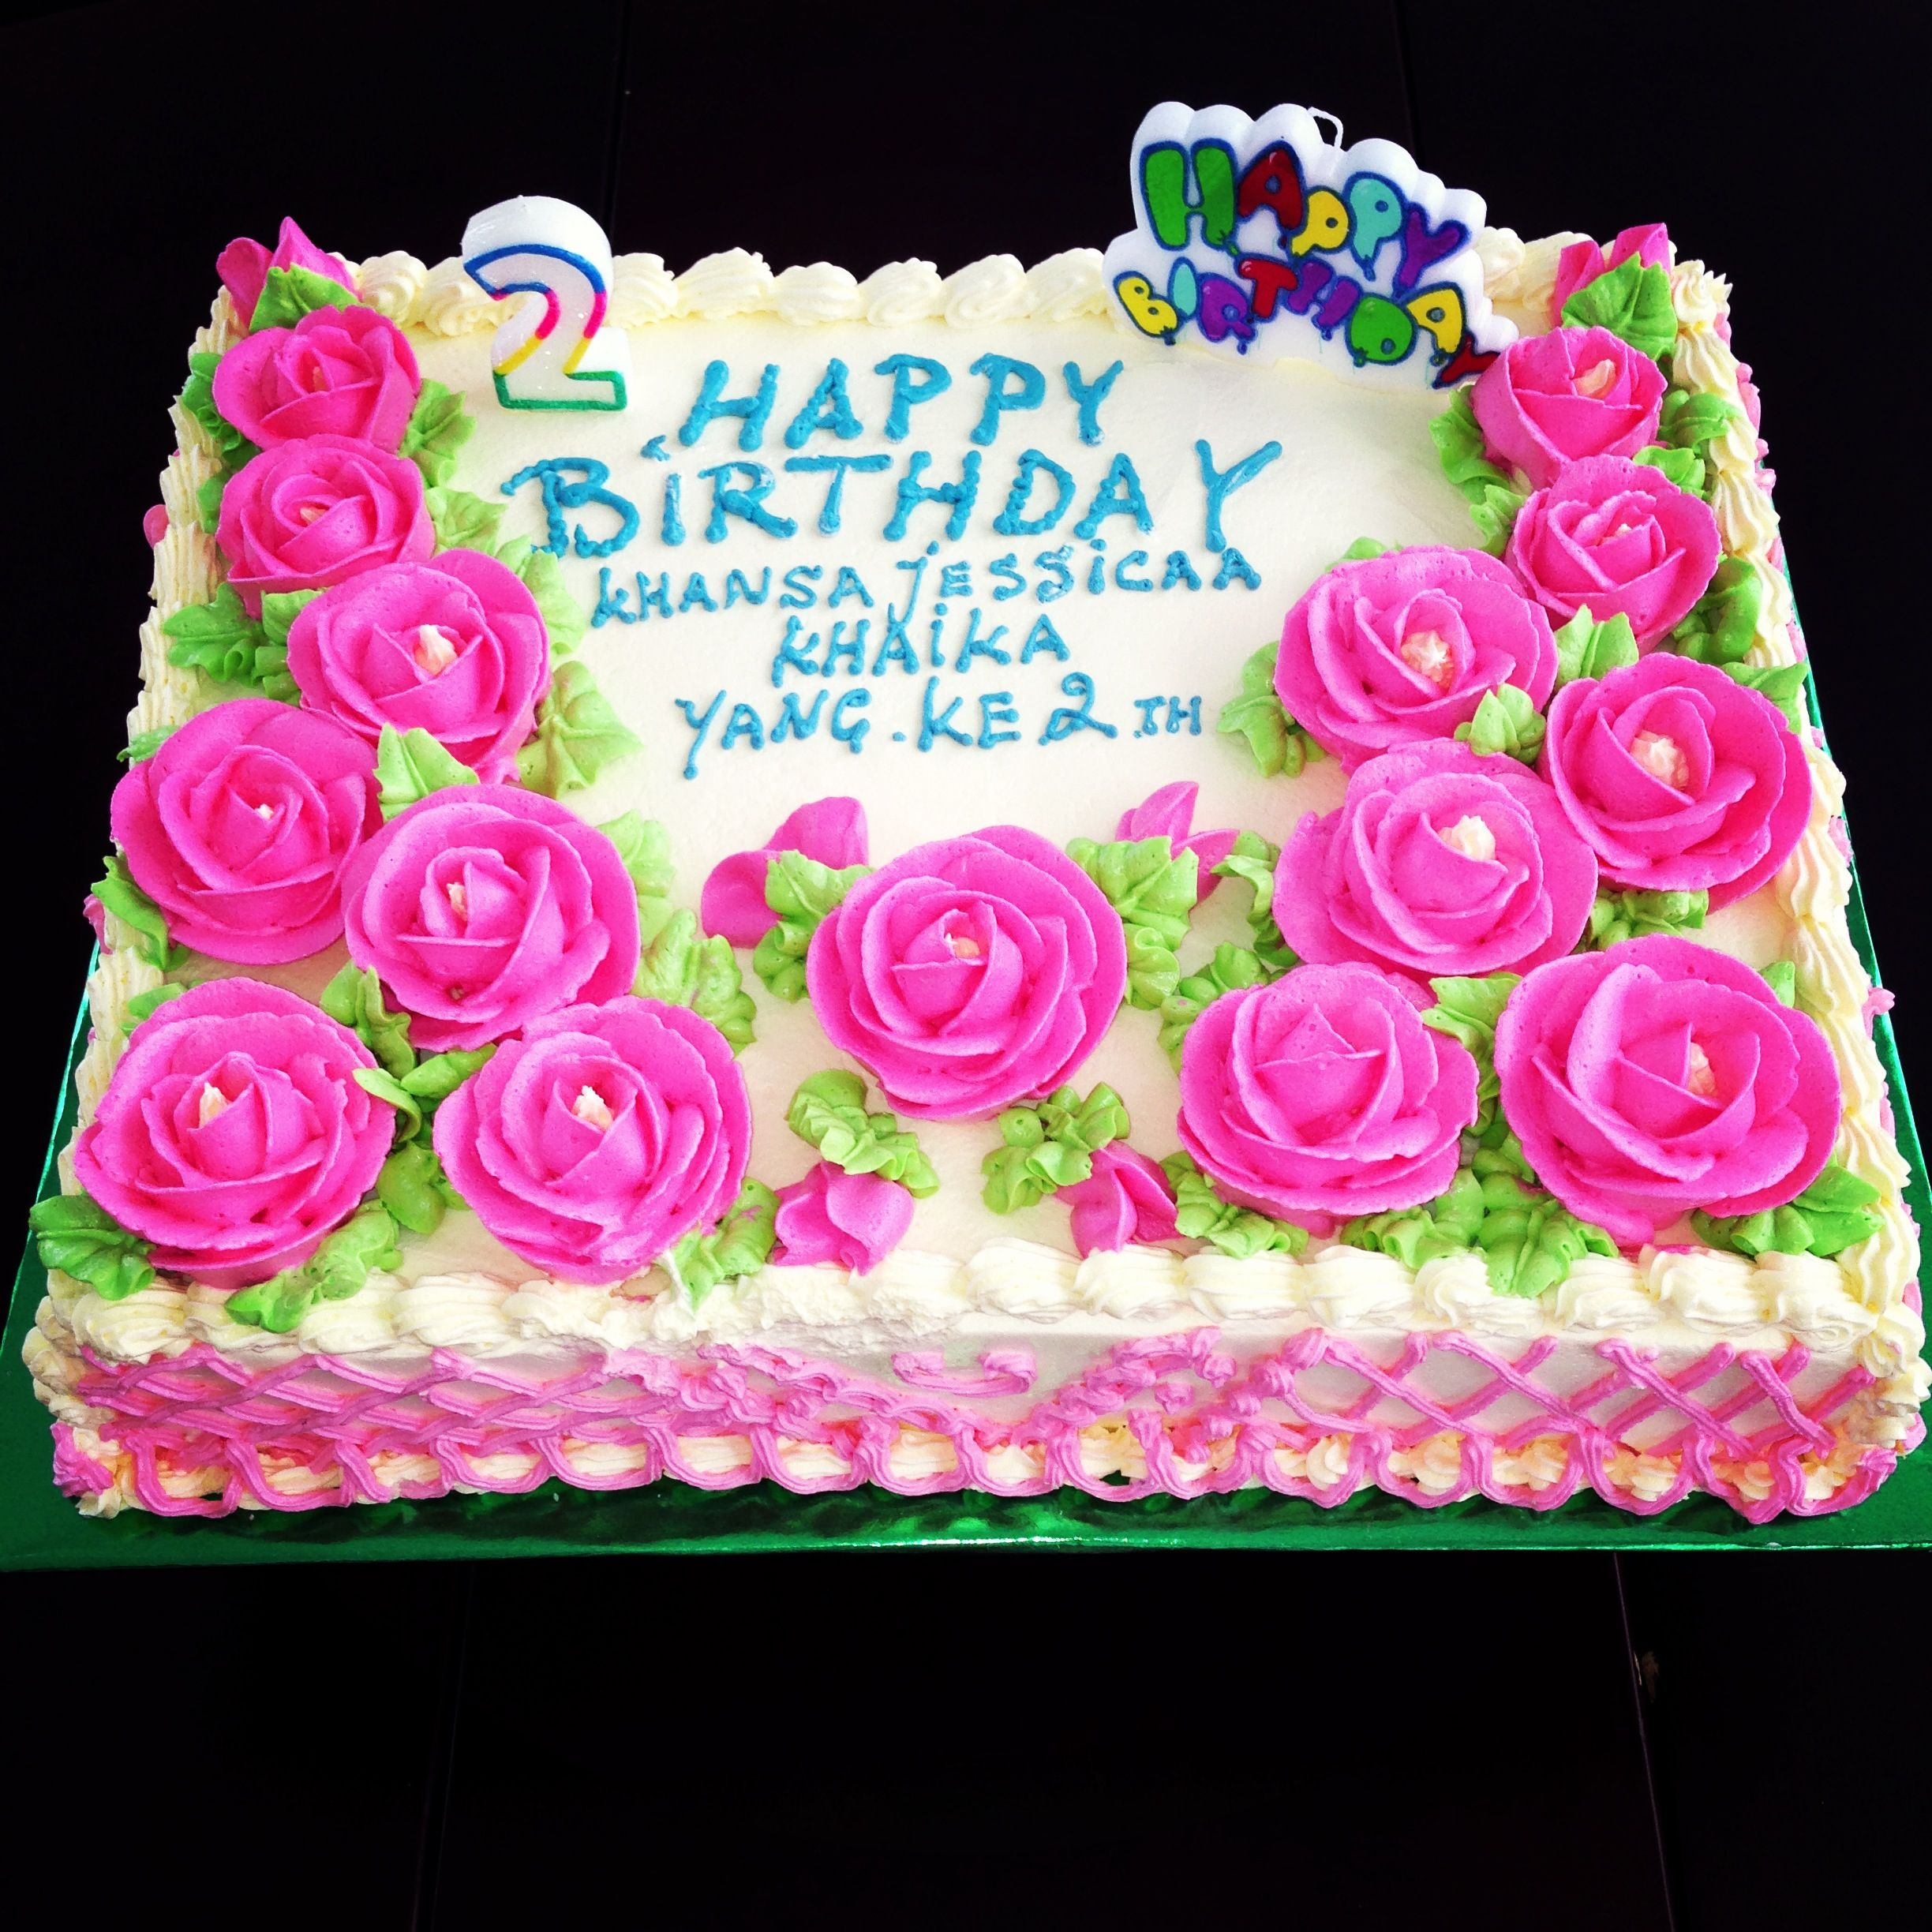 Khansa Pink Rose Birthday Cake